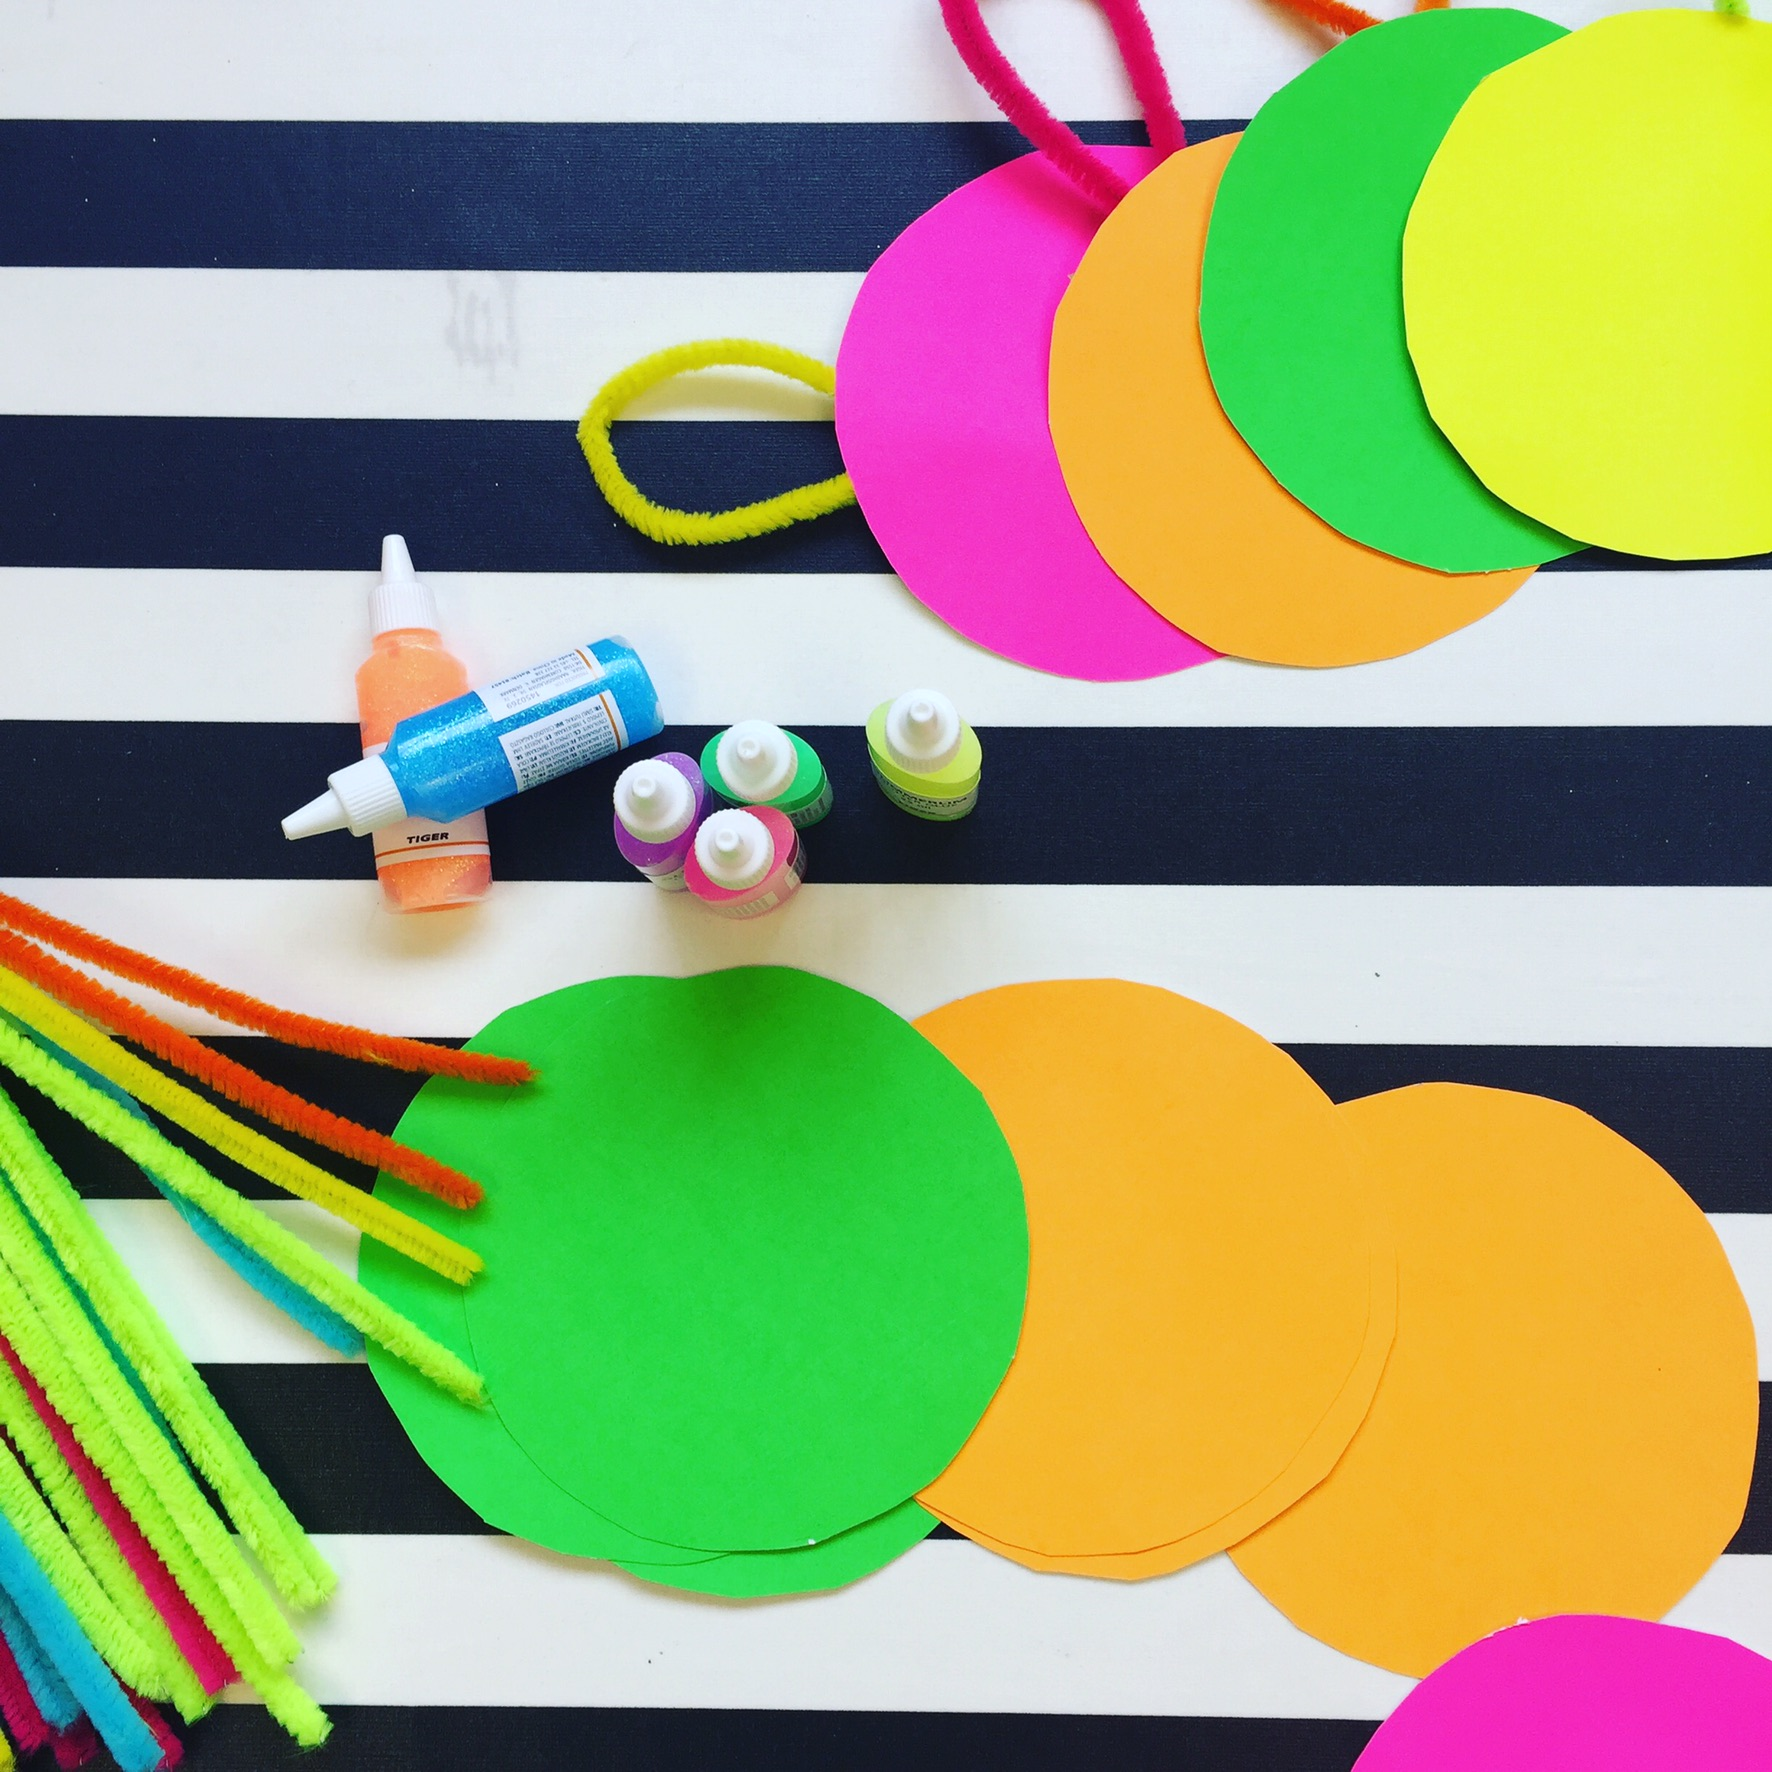 hello molly - New exciting drop-in classes to keep your little ones entertained. Sessions are free and suitable for children aged 2+